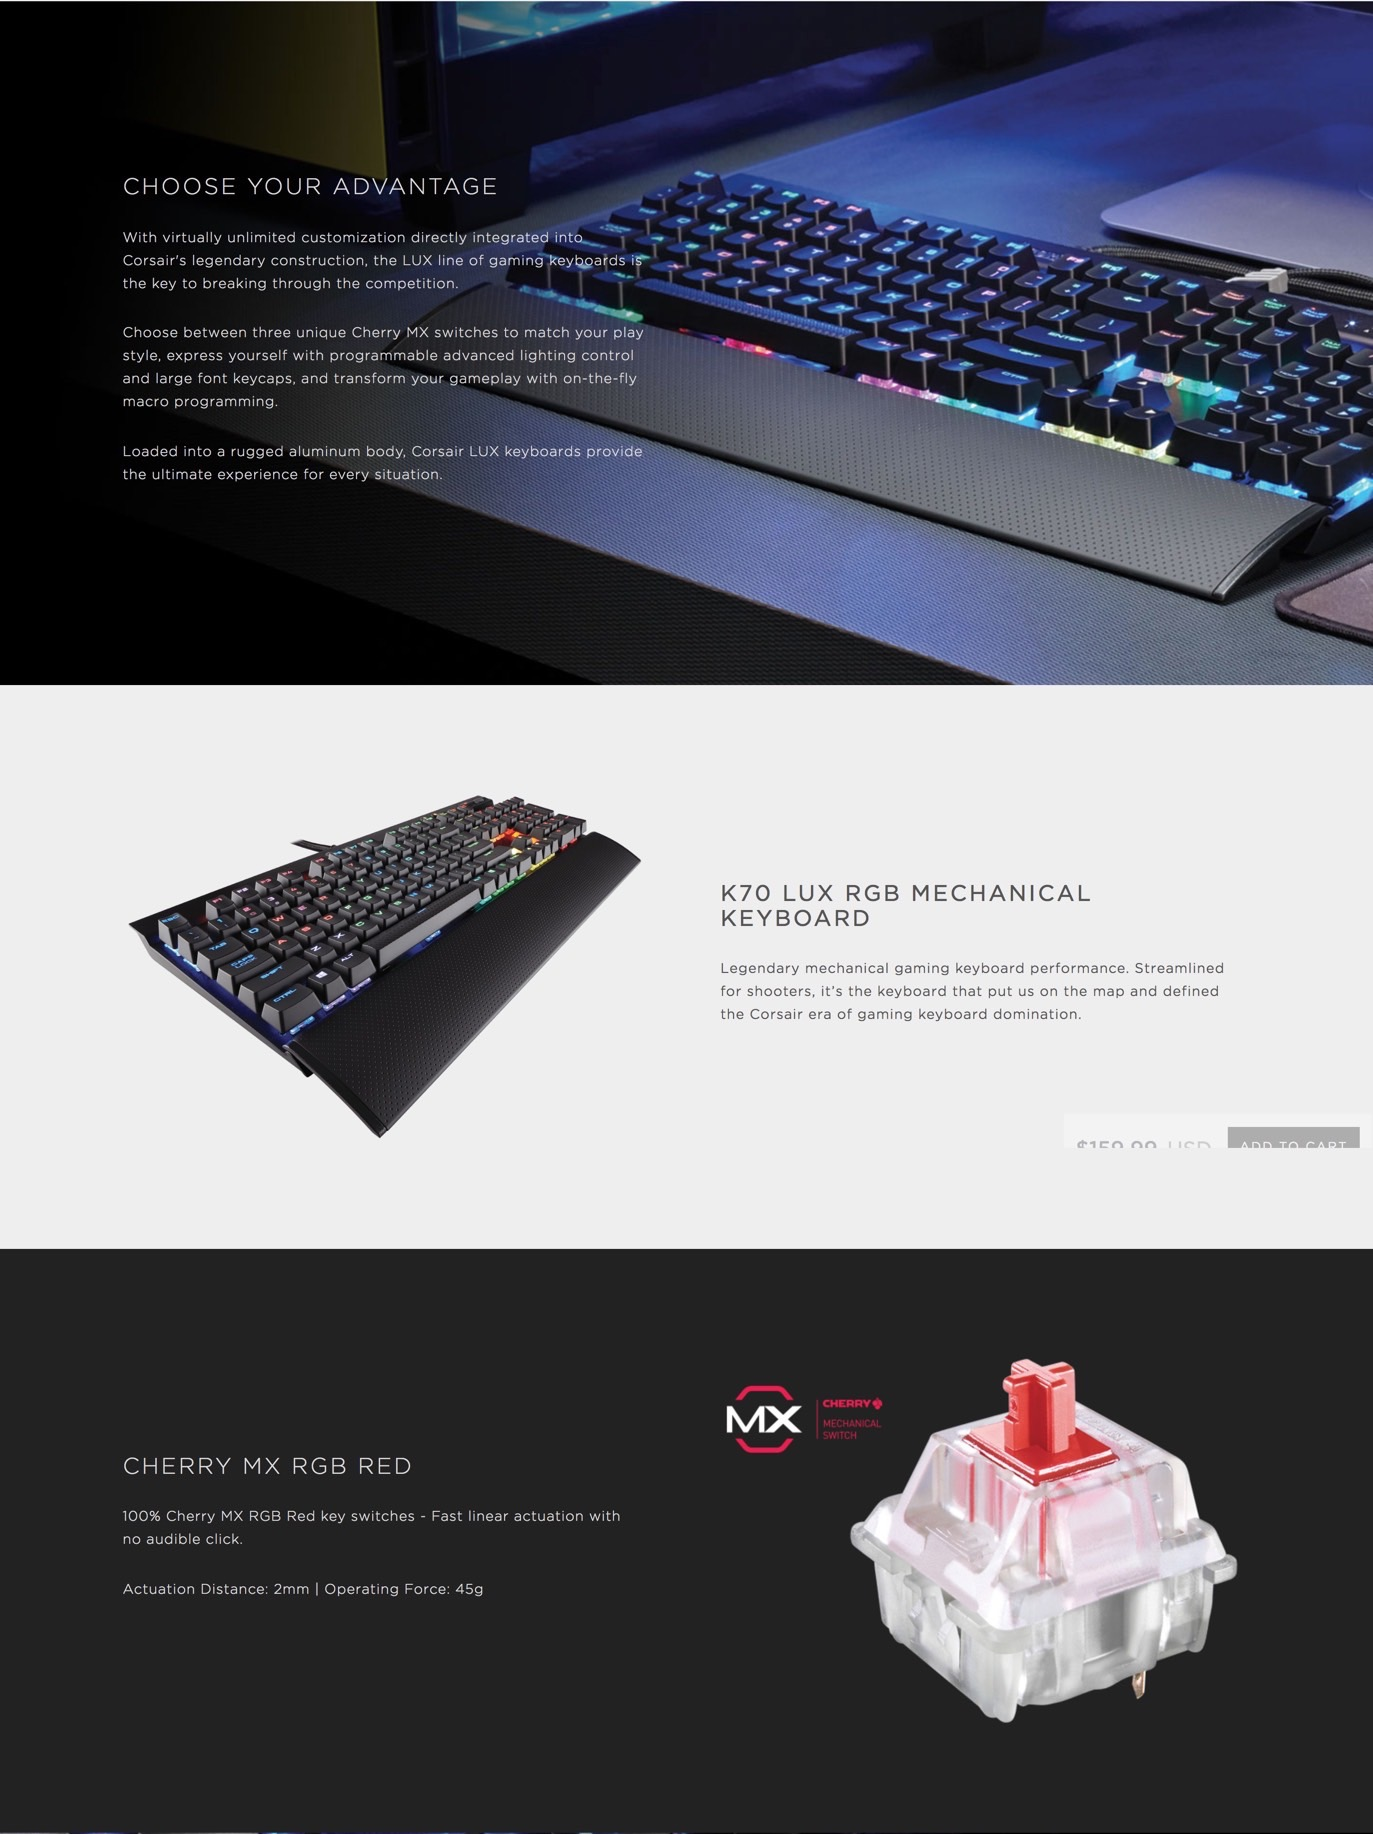 Promo Corsair K95 Rgb Cherry Mx Red Gaming Keyboard Terbaru 2018 K70 Lux Brown Switch Mechanical Hitam F Description Categories Keyboards Tags